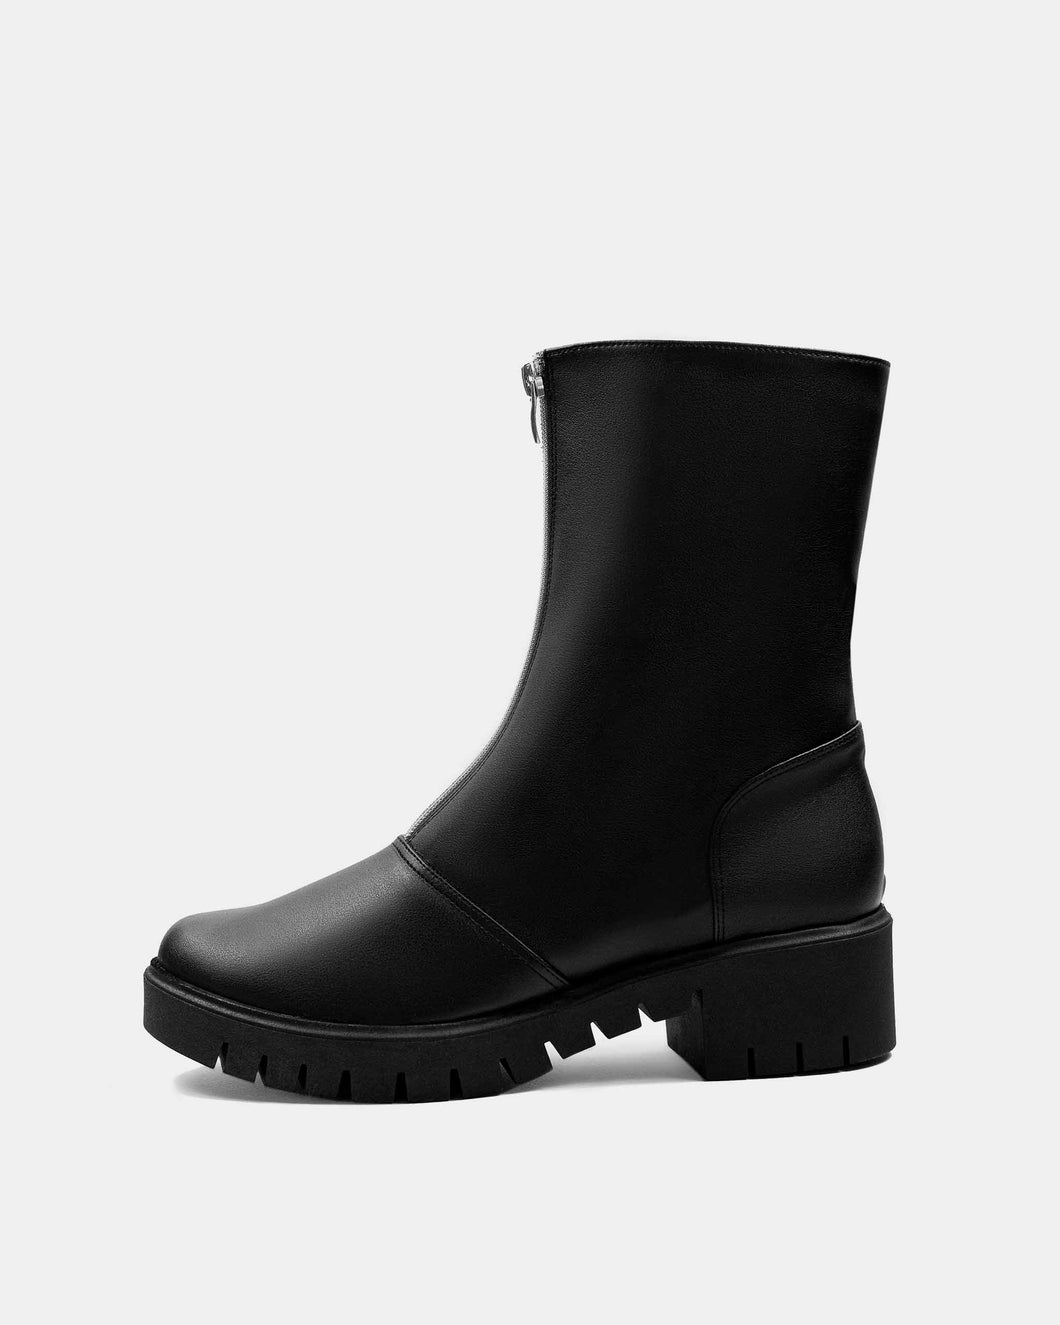 Cyber Boots Black cactus leather ankle boots